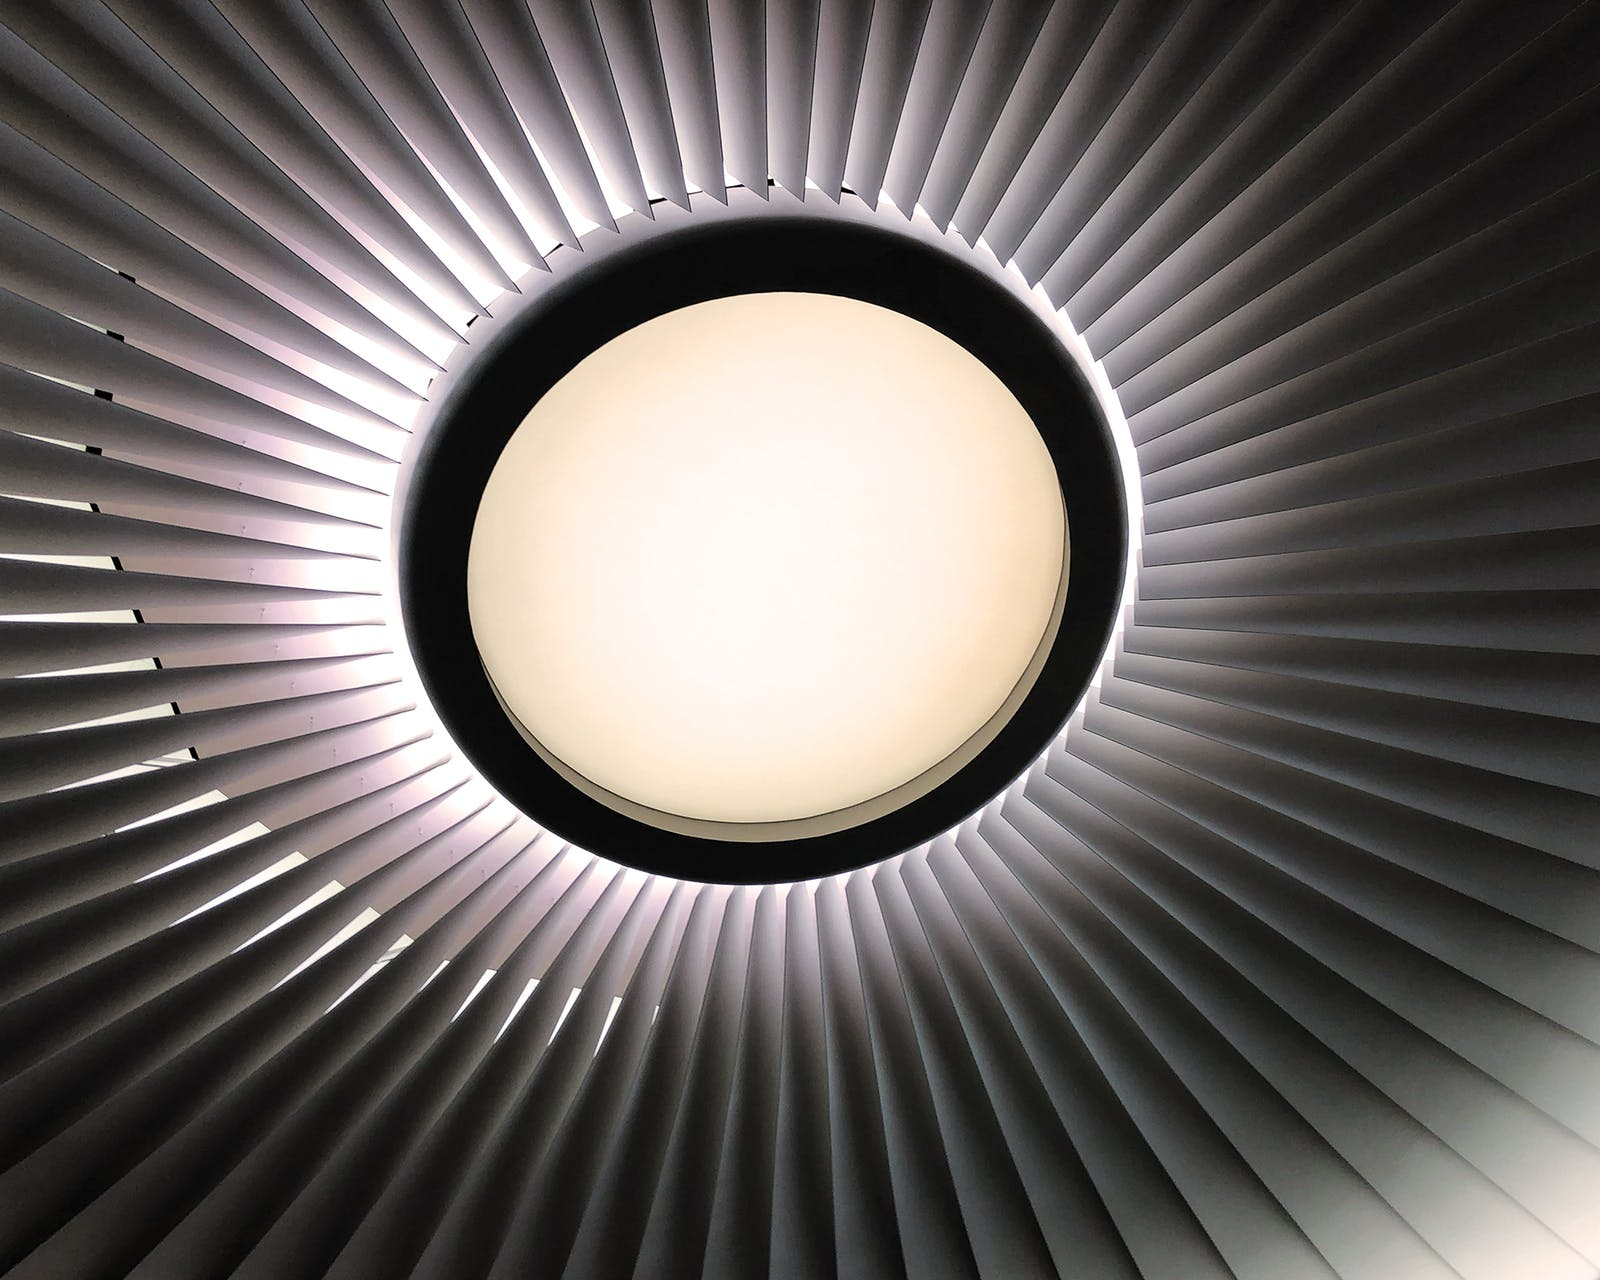 The ceiling of Skyview 8, the design of which was inspired by a jet engine.